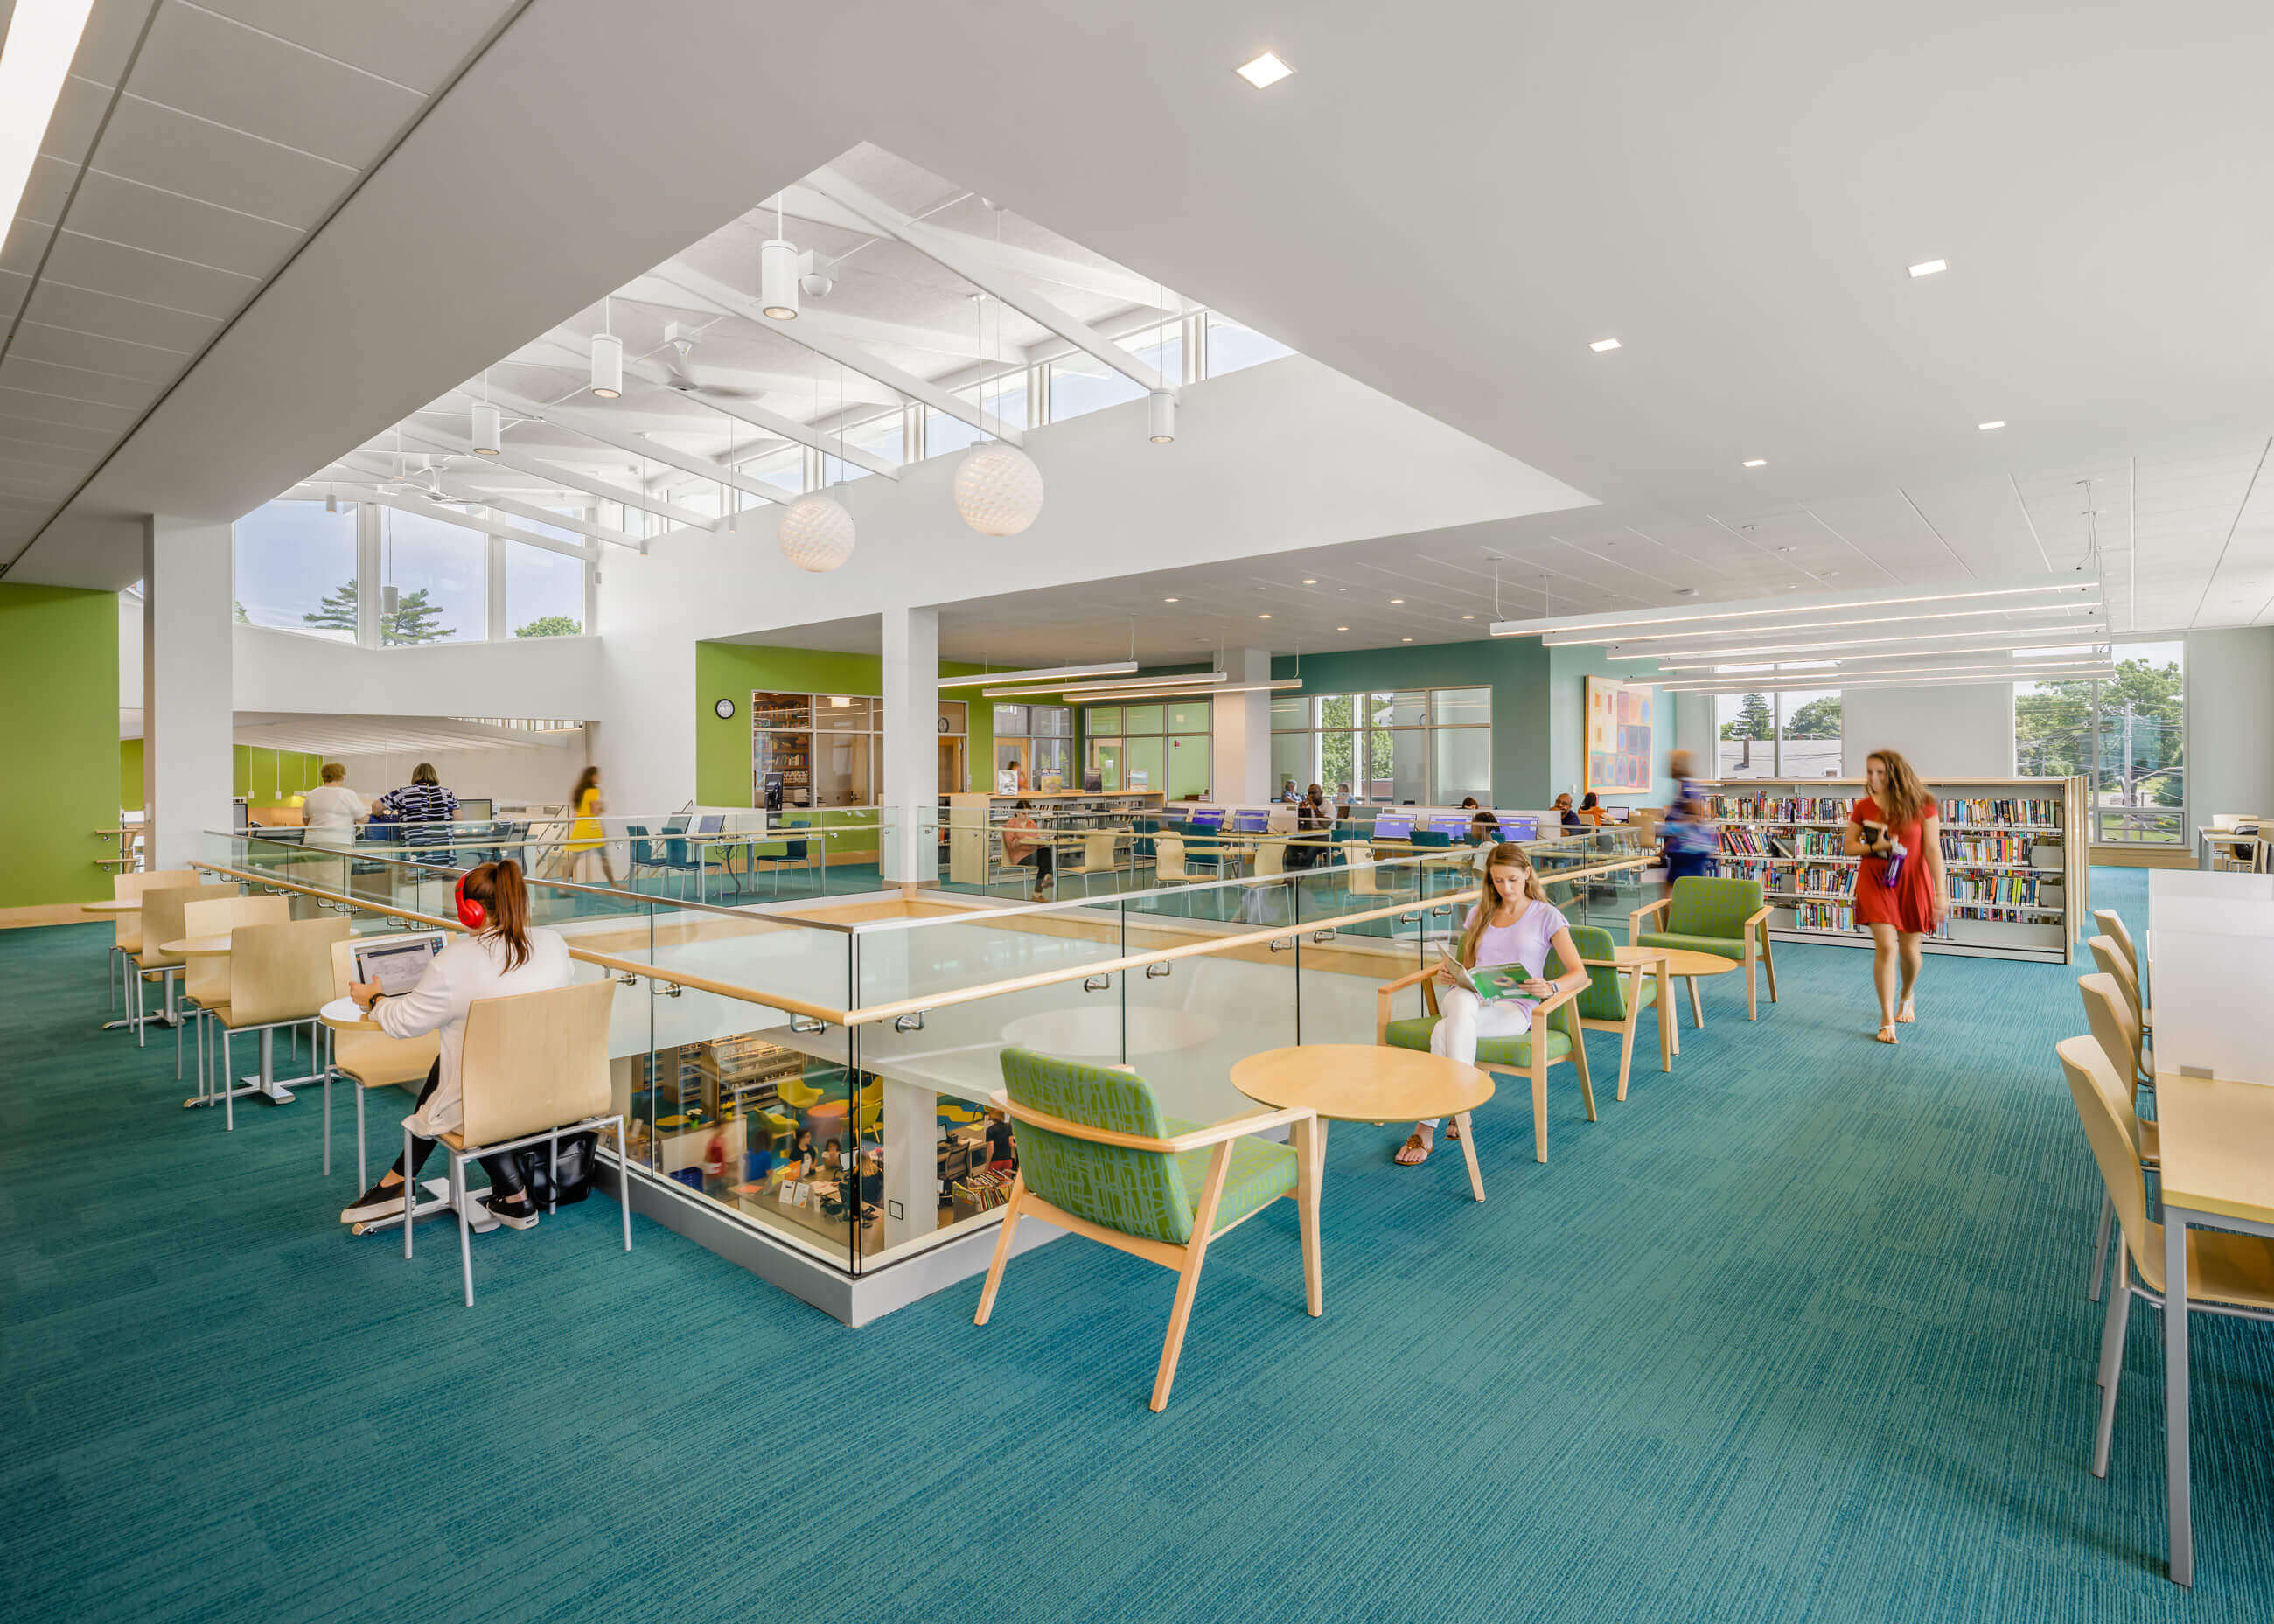 Library patrons in comfortable chairs in a bright, naturally lit space with green and teal colors, overlooking the floor below.